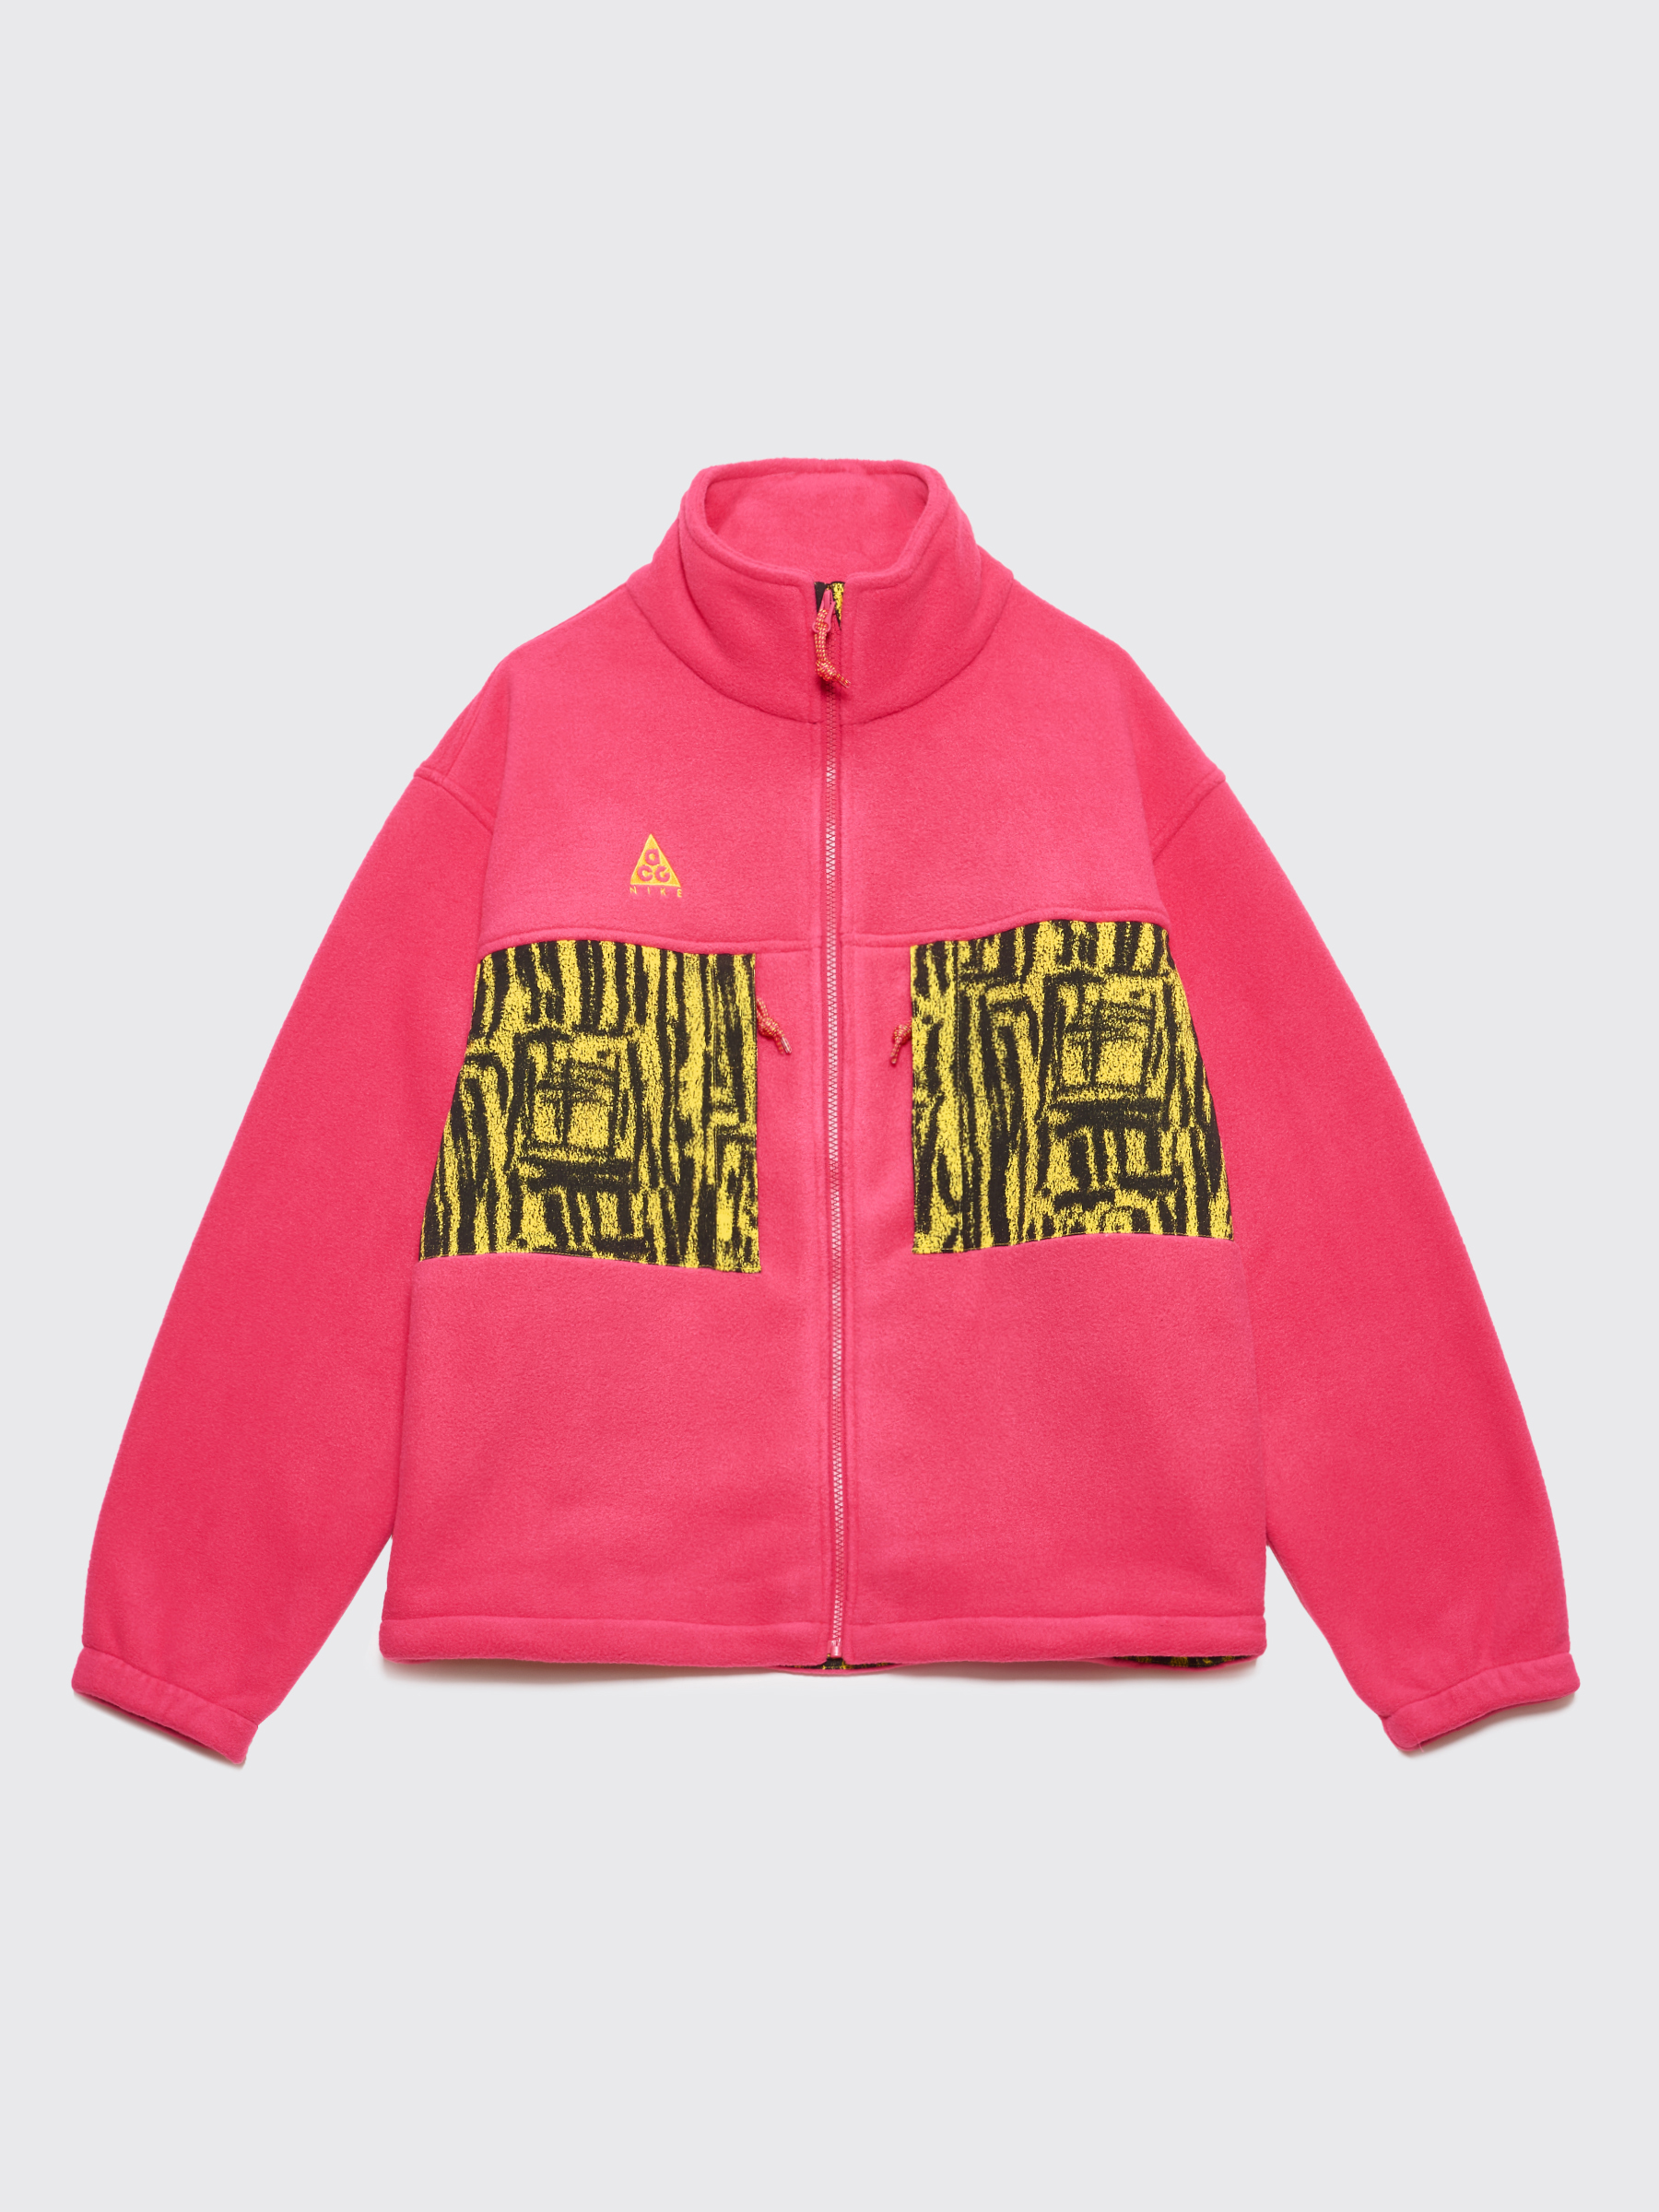 83dae224cb37 Très Bien - Nike ACG Fleece Jacket Rush Pink   Opti Yellow